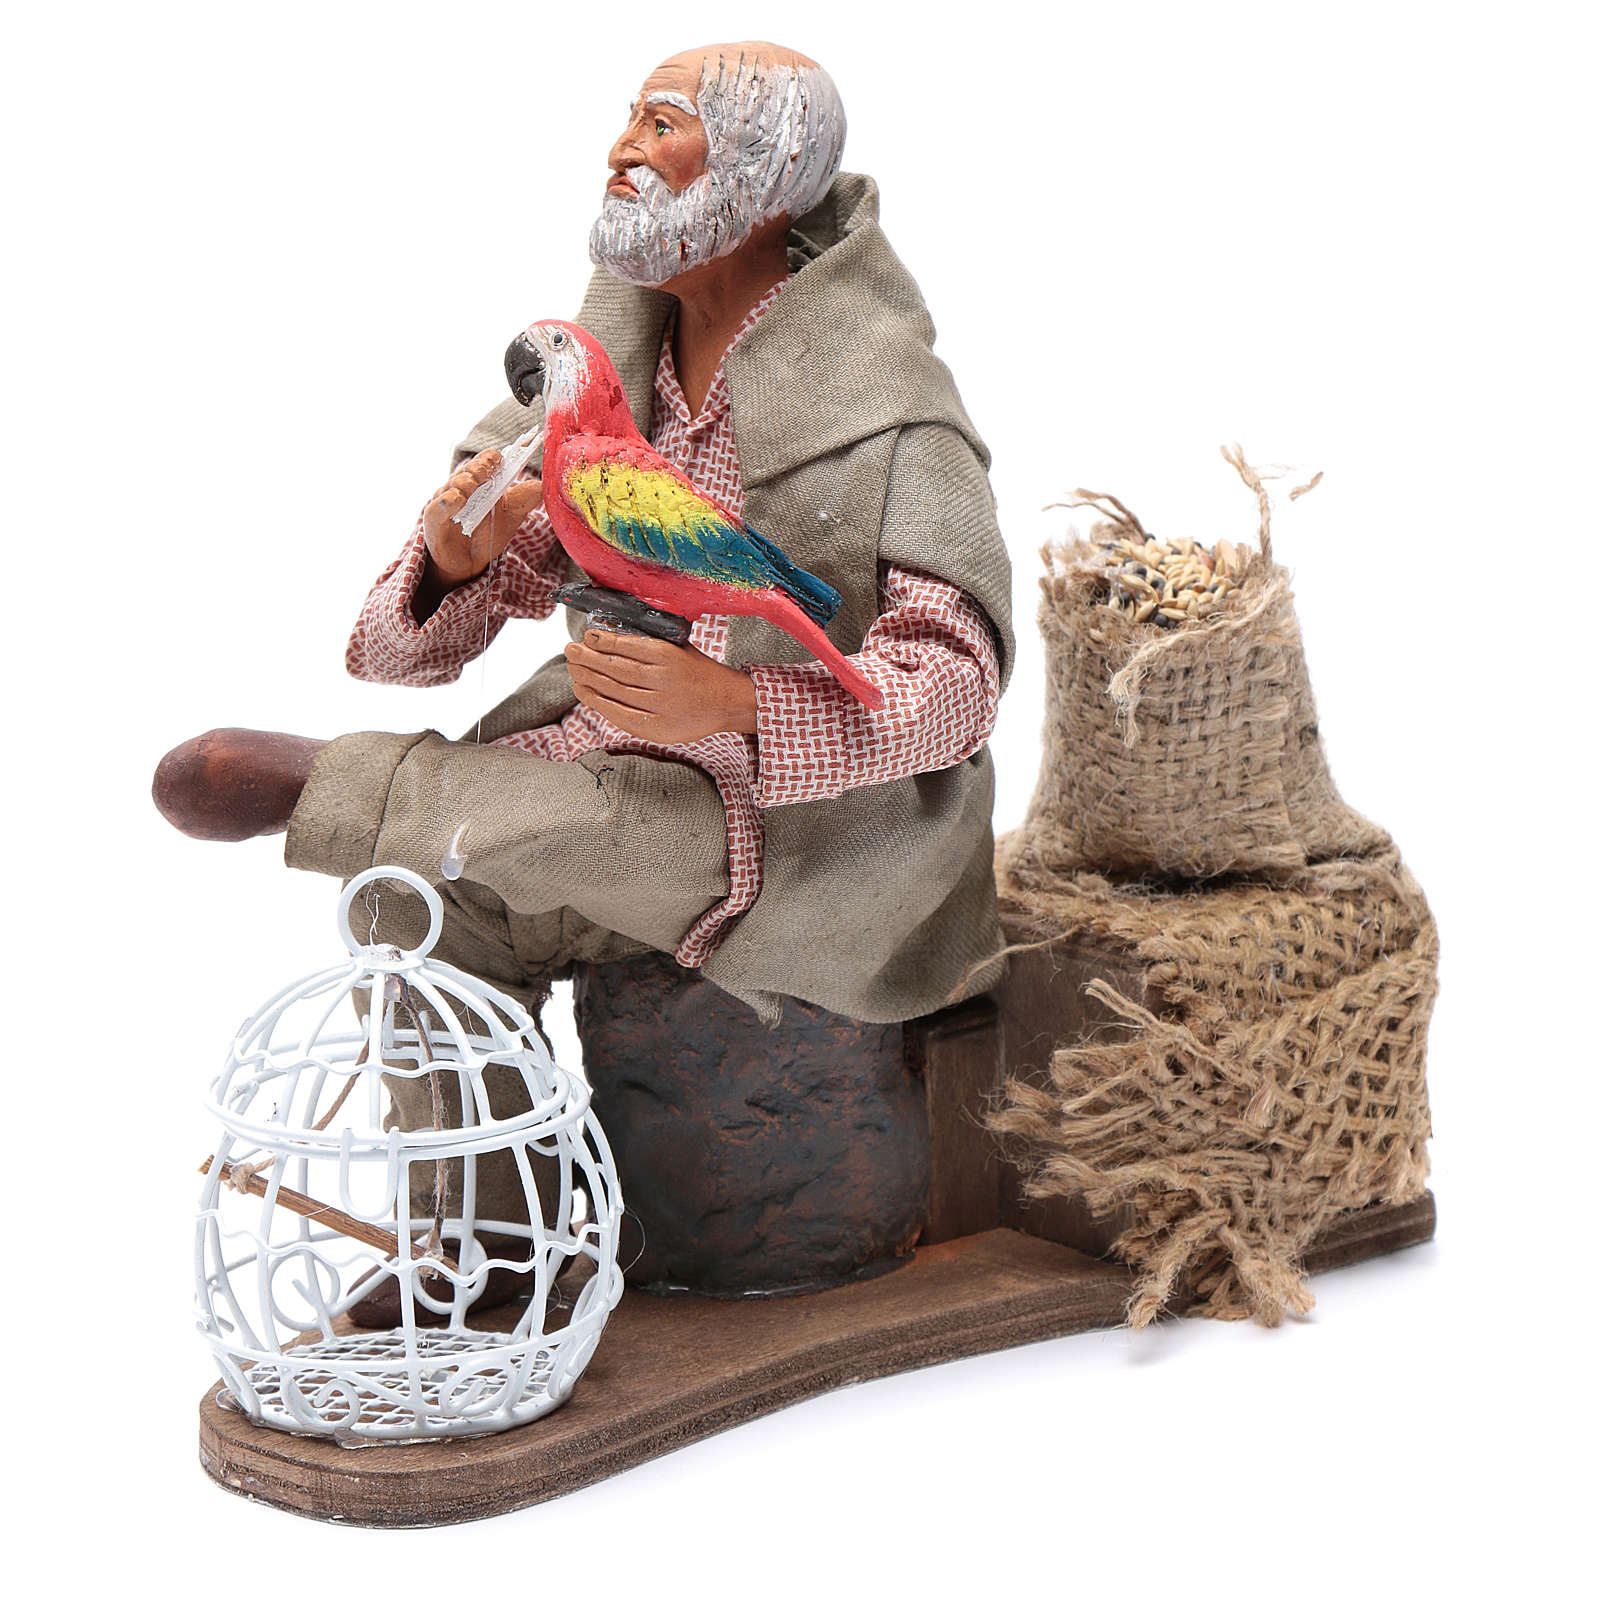 Neapolitan nativity scene moving man with parrot in cage 24 cm 4